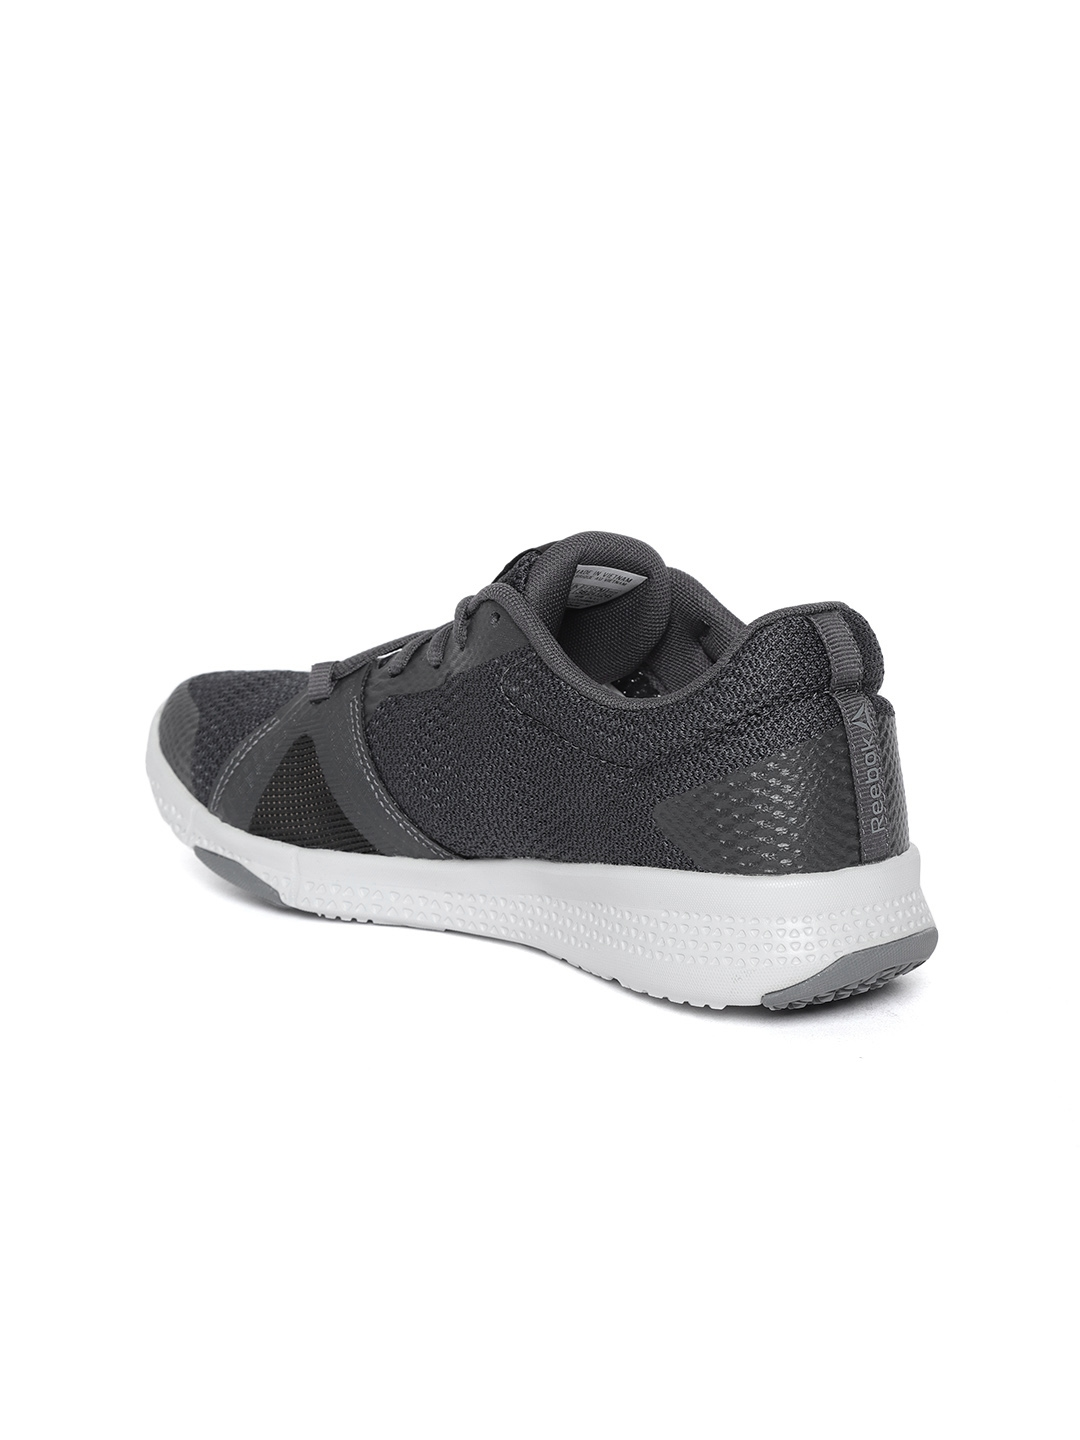 4cb0feb38427 Buy Reebok Women Charcoal Grey Flexile Training Shoes - Sports Shoes ...